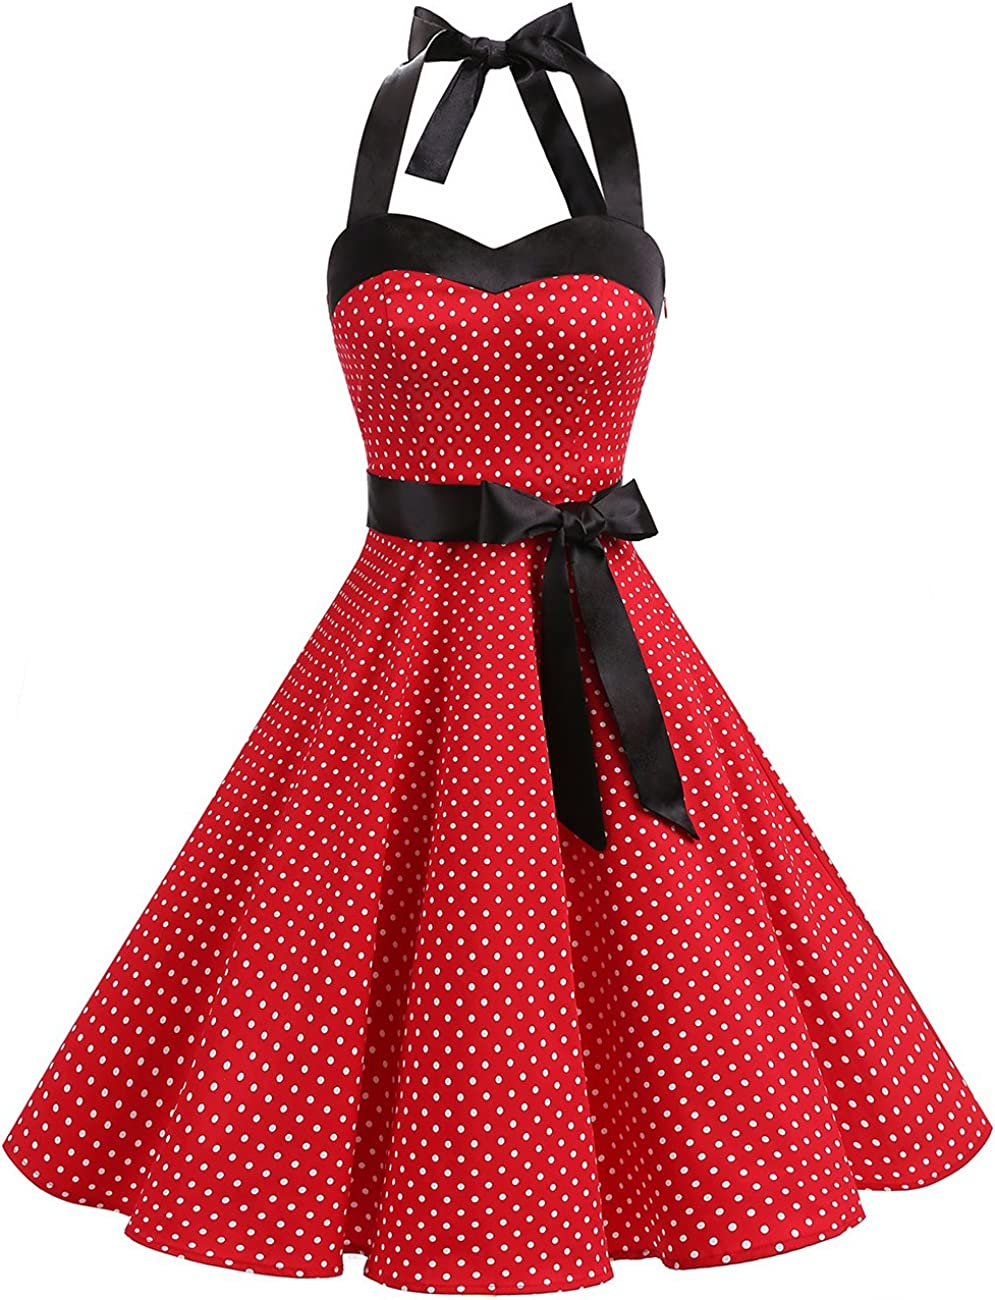 TALLA S. Dresstells® Halter 50s Rockabilly Polka Dots Audrey Dress Retro Cocktail Dress Red Small White Dot